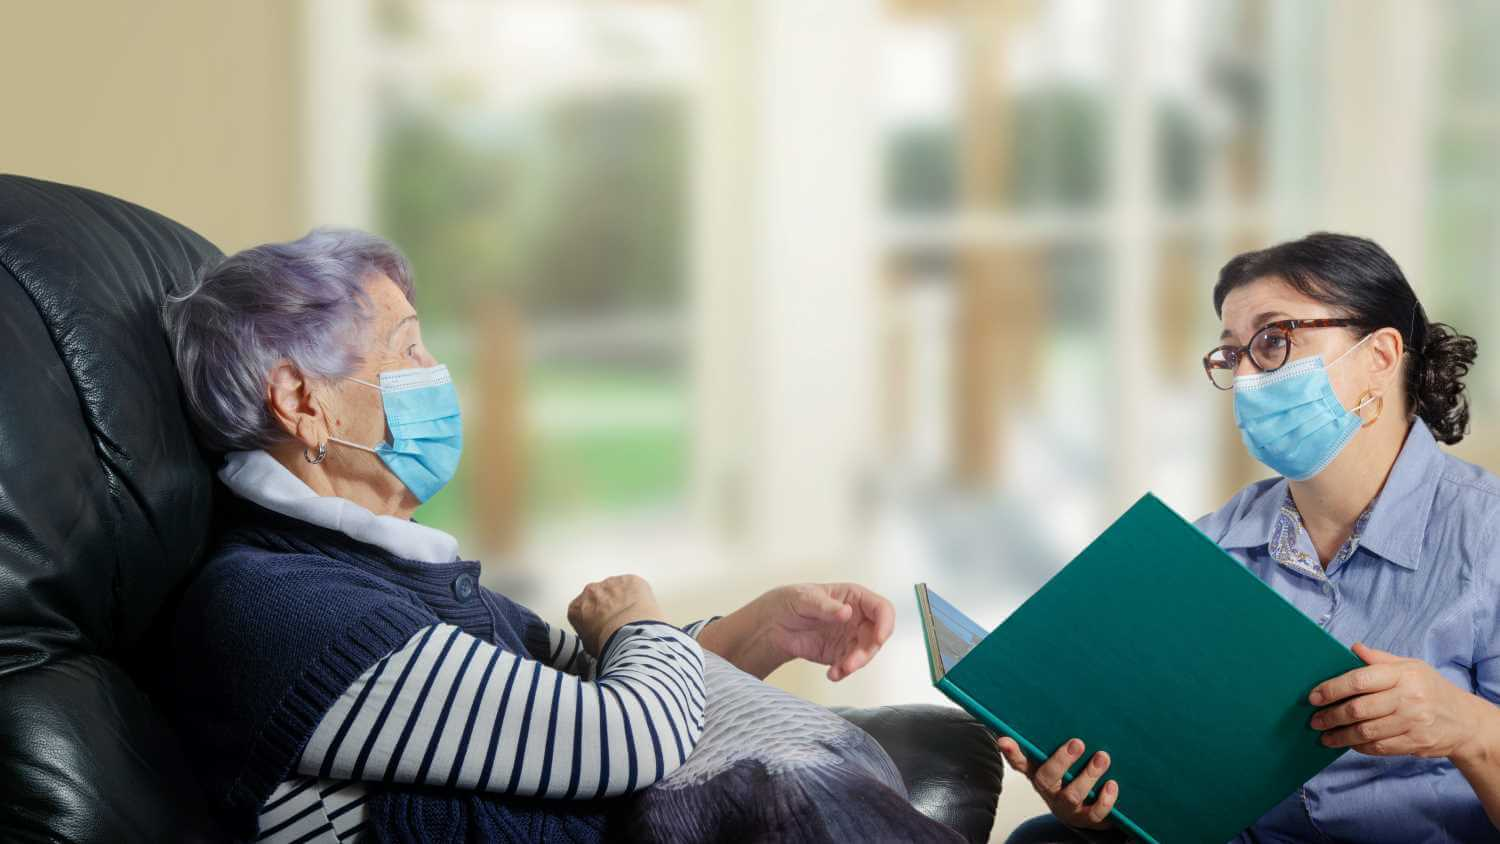 A patient and healthcare professional, both wearing masks, holding conversation.